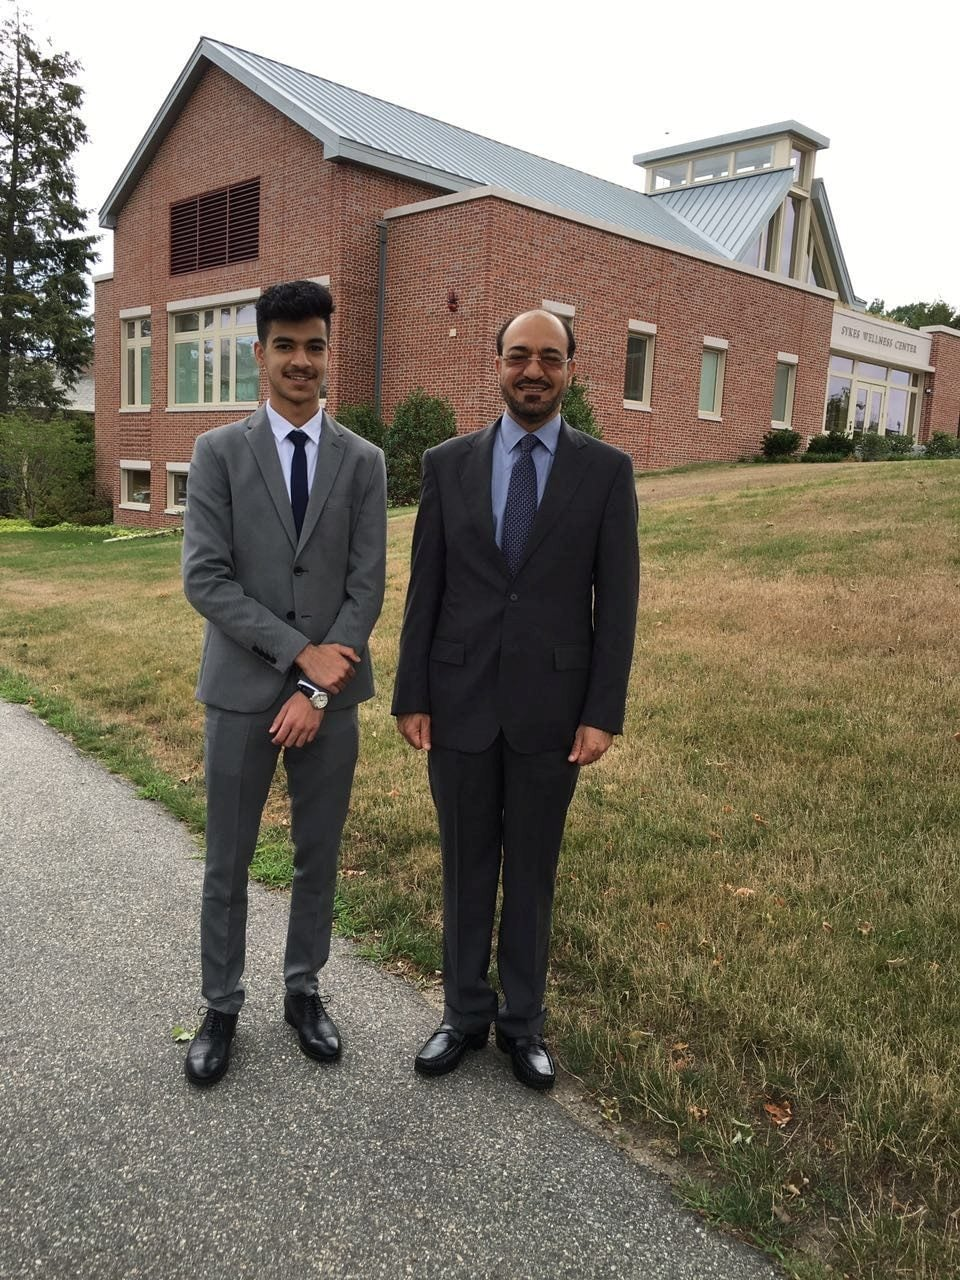 Former Saudi intelligence official Saad al-Jabri (R) poses with his son Omar al-Jabri whilst visiting schools around Boston, US in this handout picture shot in the autumn of 2016. — Reuters